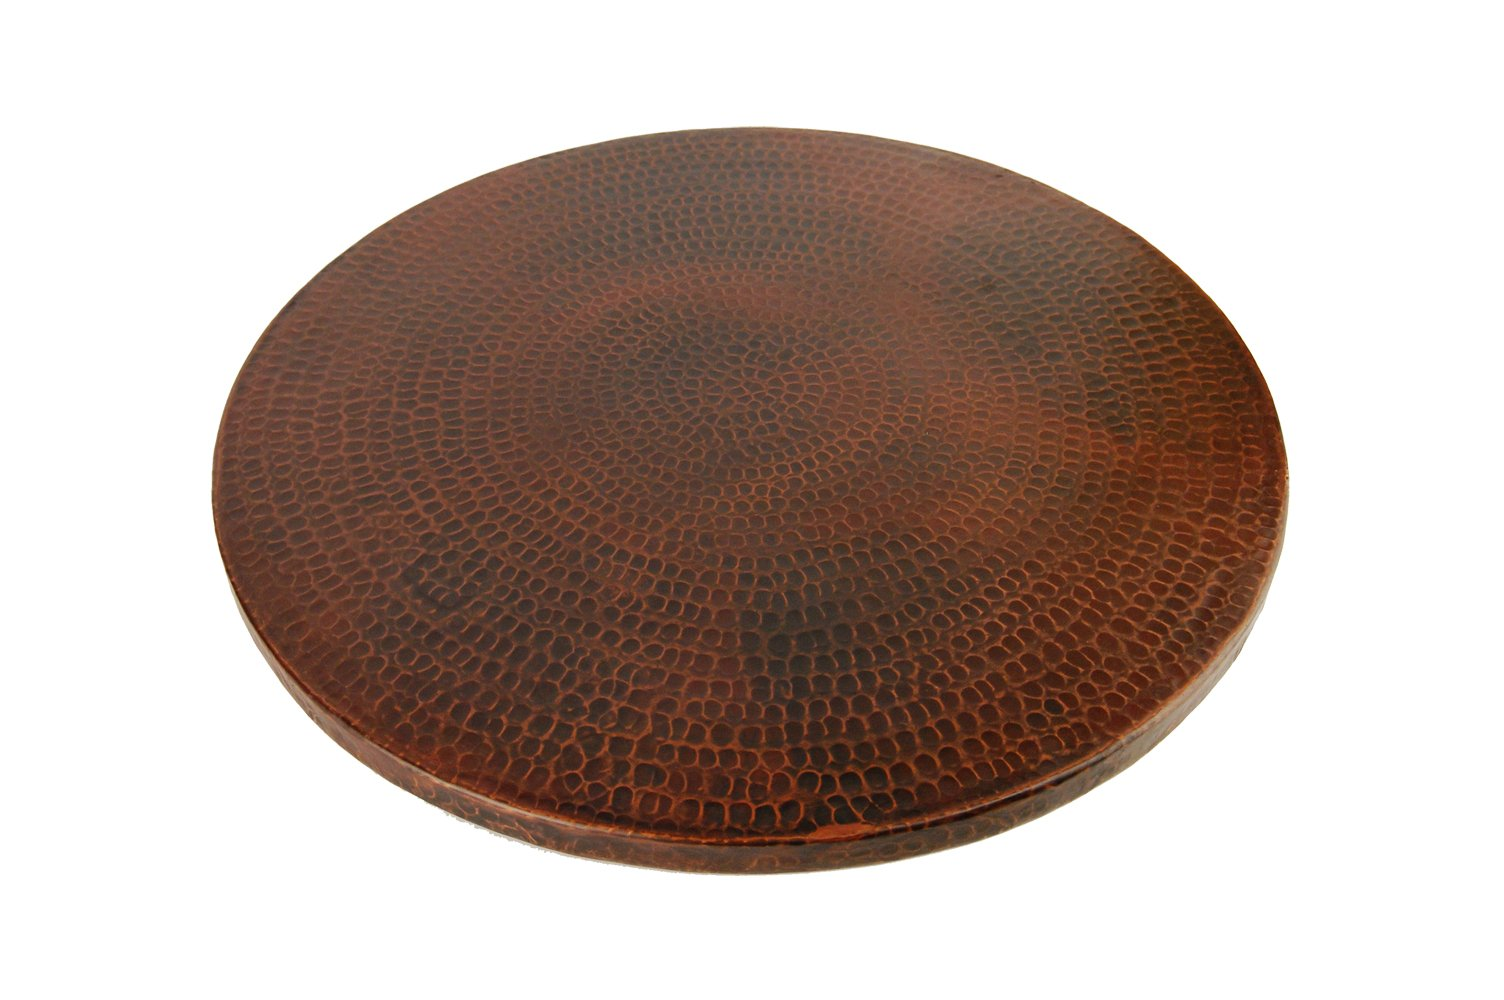 Premier Copper Products LS18DB 18-Inch Hand Hammered Copper Lazy Susan, Oil Rubbed Bronze by Premier Copper Products